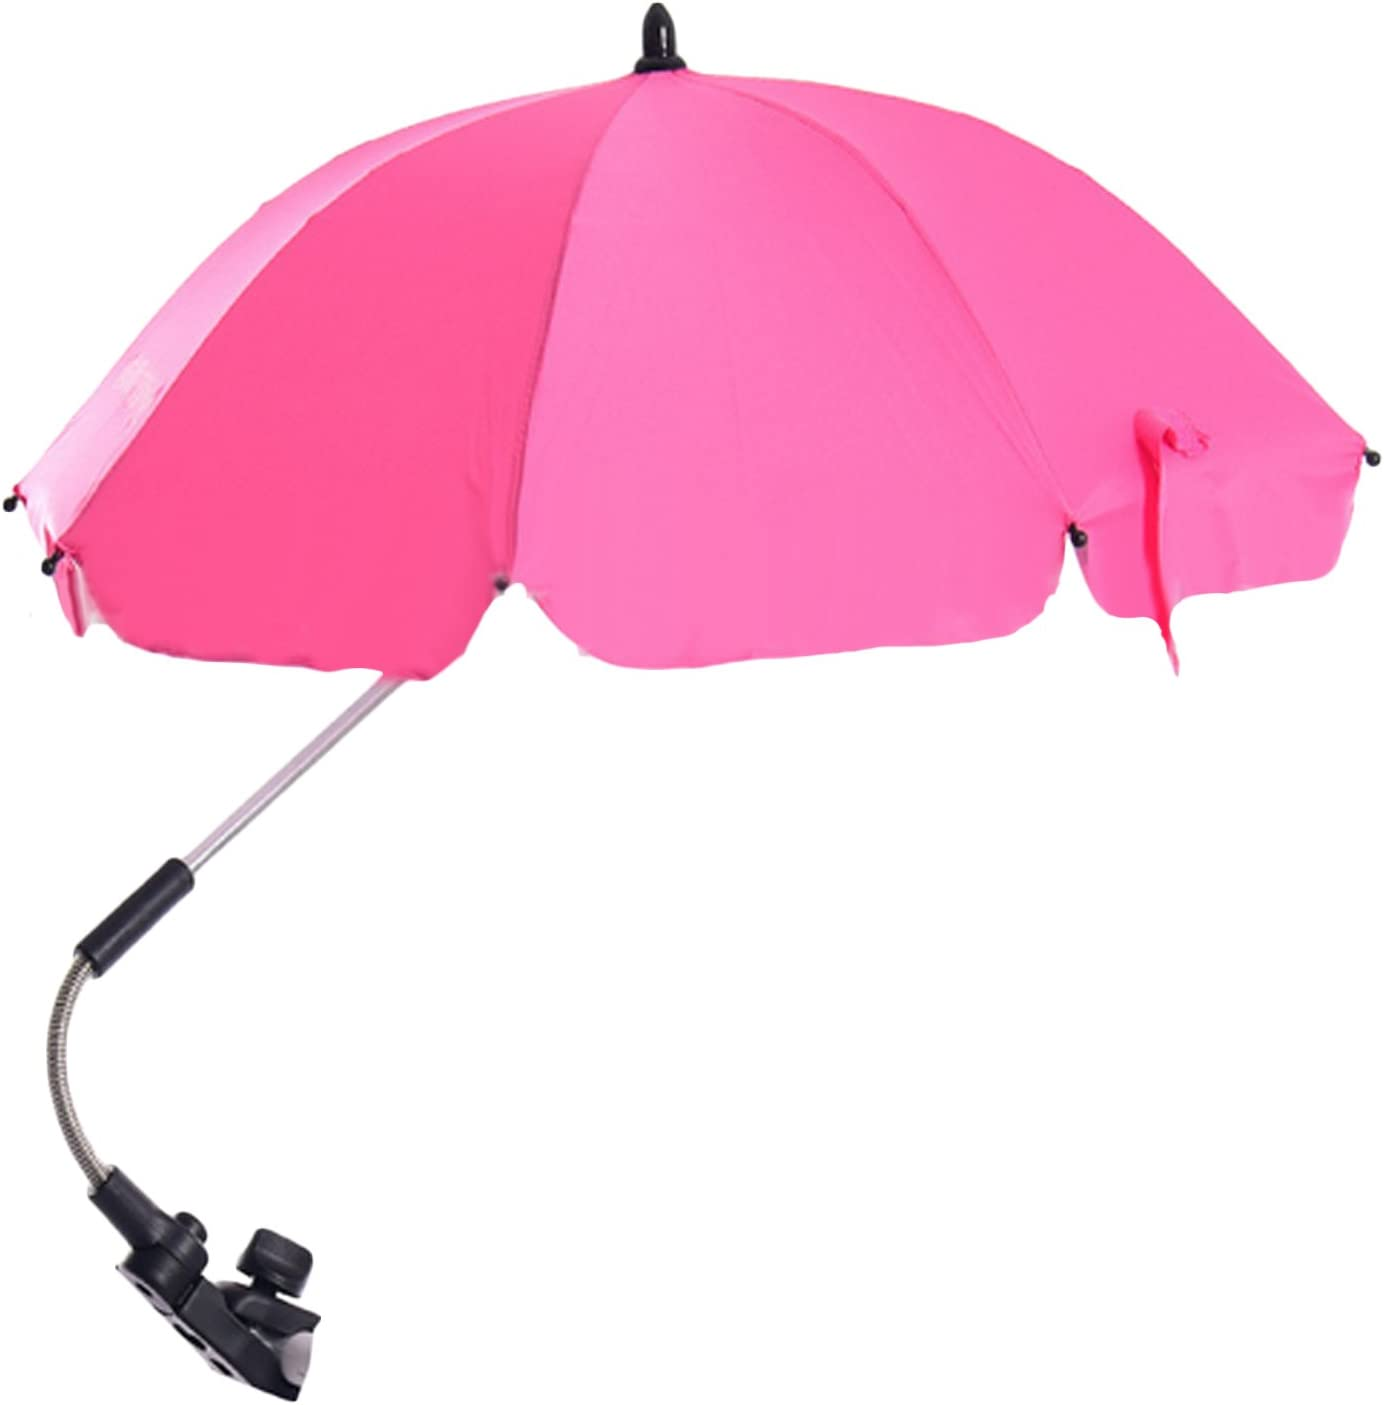 Stroller Umbrella,Migavenn Adjustable Baby Stroller Cover Parasol Shade UV Rain Protection Umbrella Parasol with Swivel Connector for Wheelchair Pushchair Accessories Purple